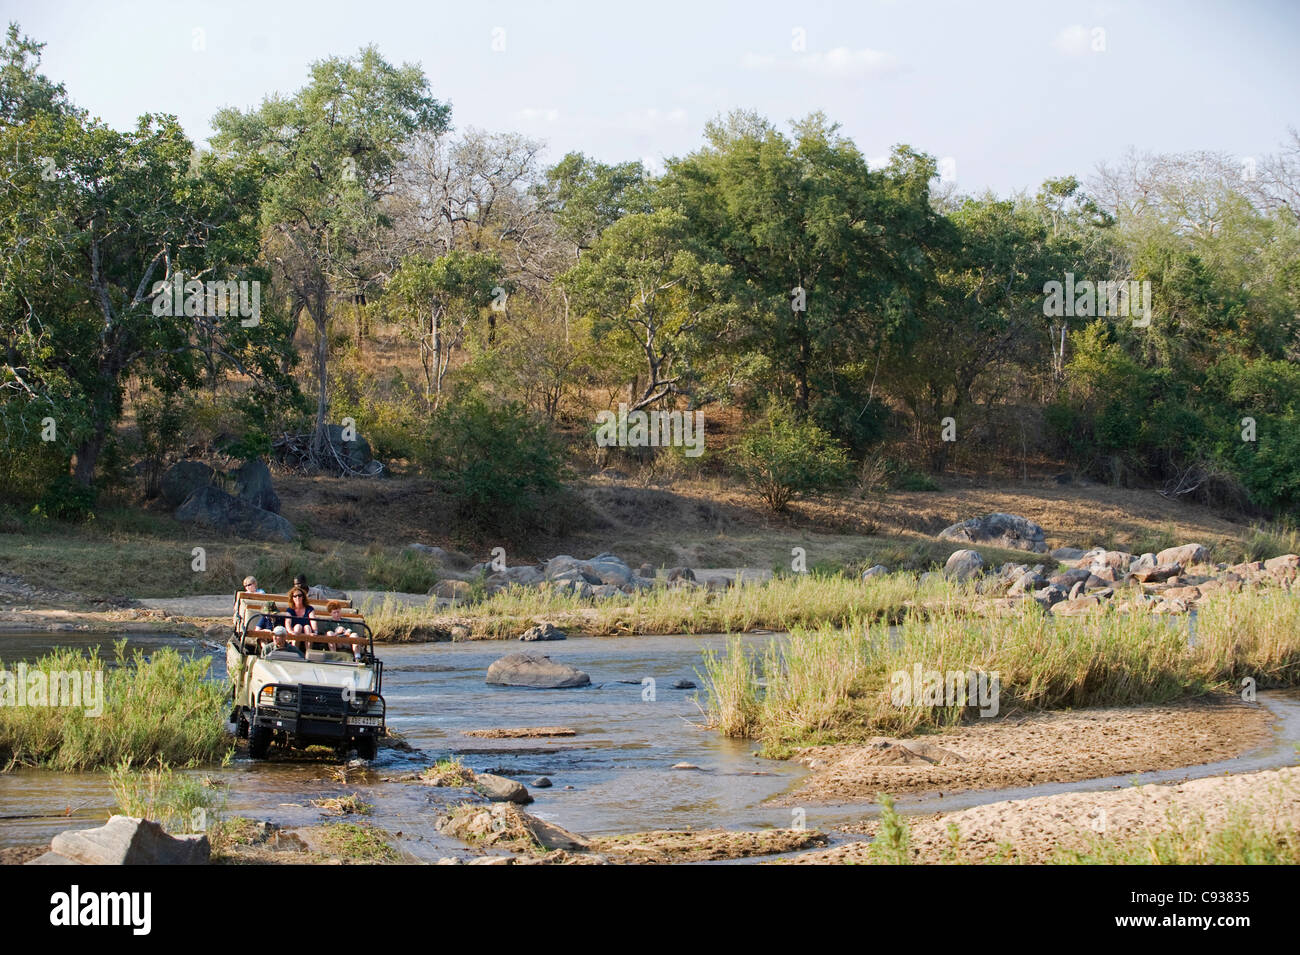 Malawi, Majete Wildlife Reserve.  Family on safari cross the Mkulumadzi River in their safari vehicle. - Stock Image